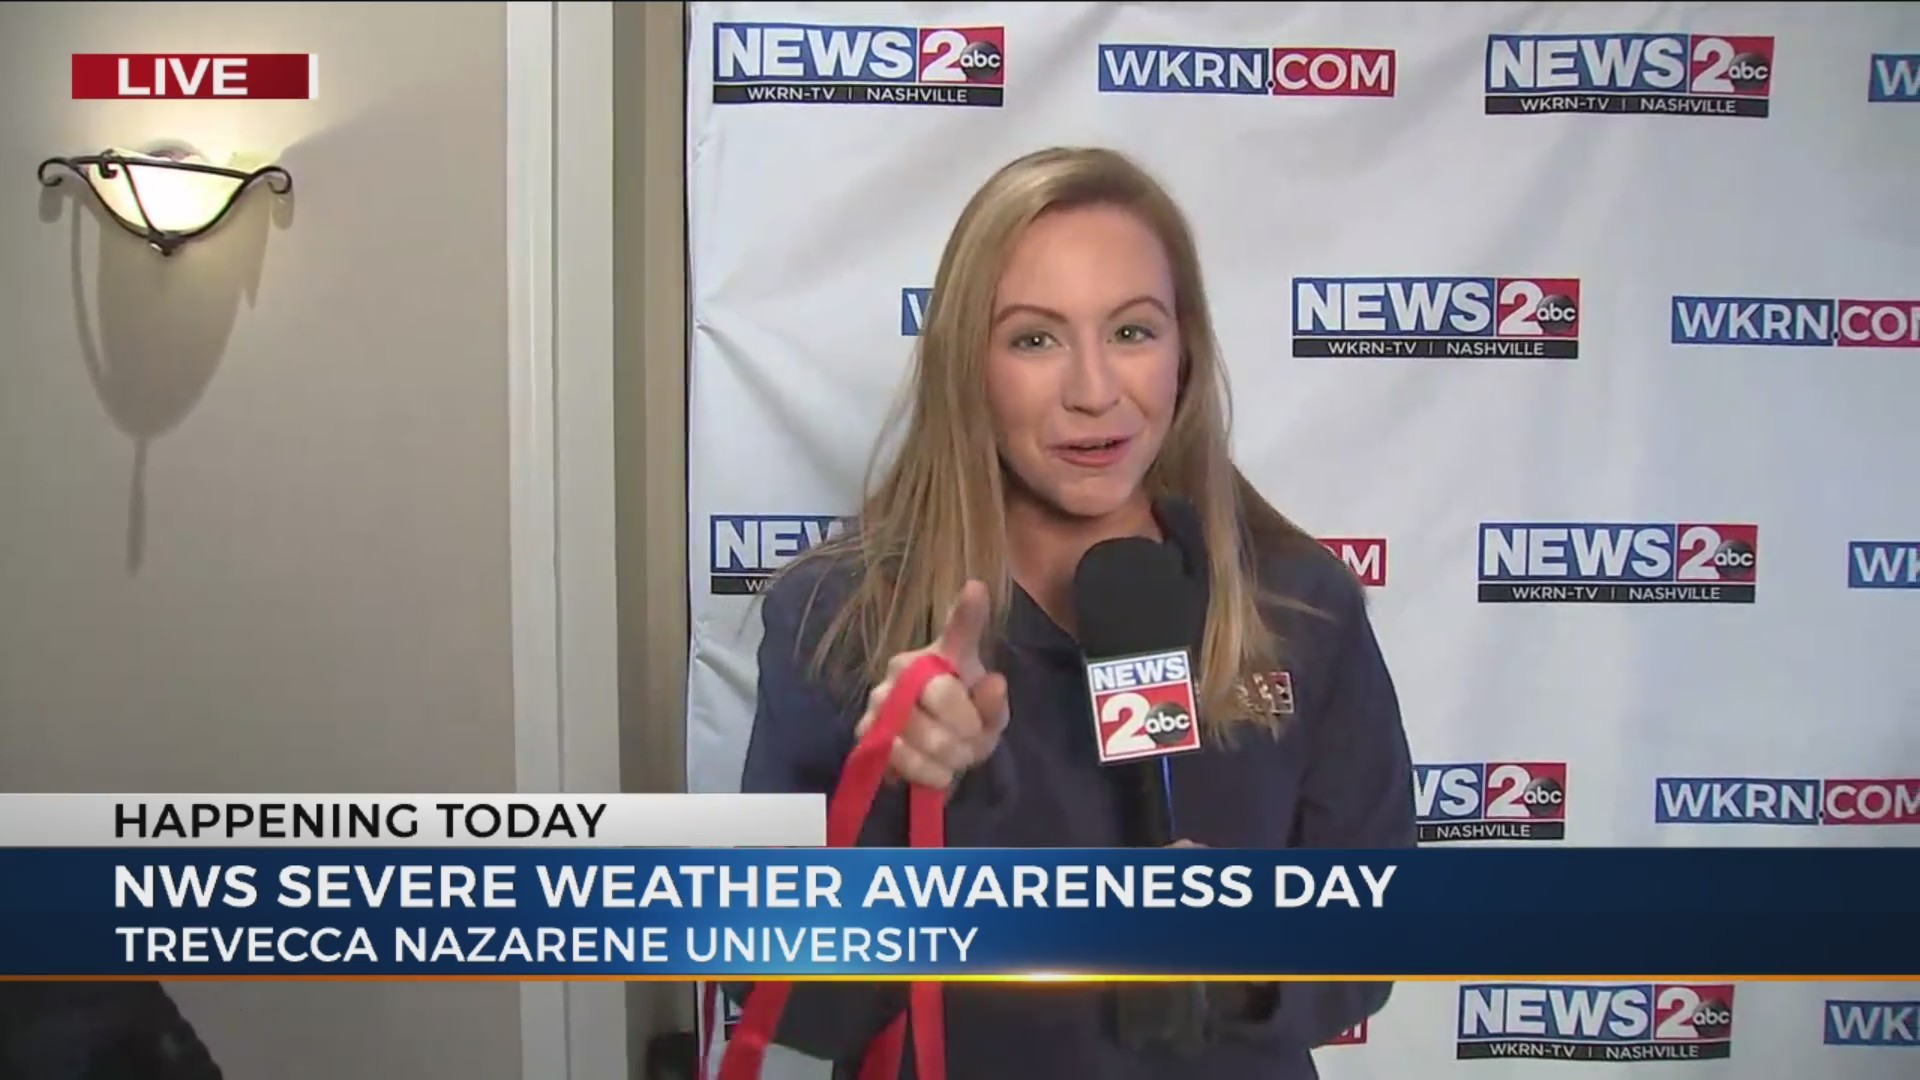 Danielle Breezy at NWS's Severe Weather Awareness Day